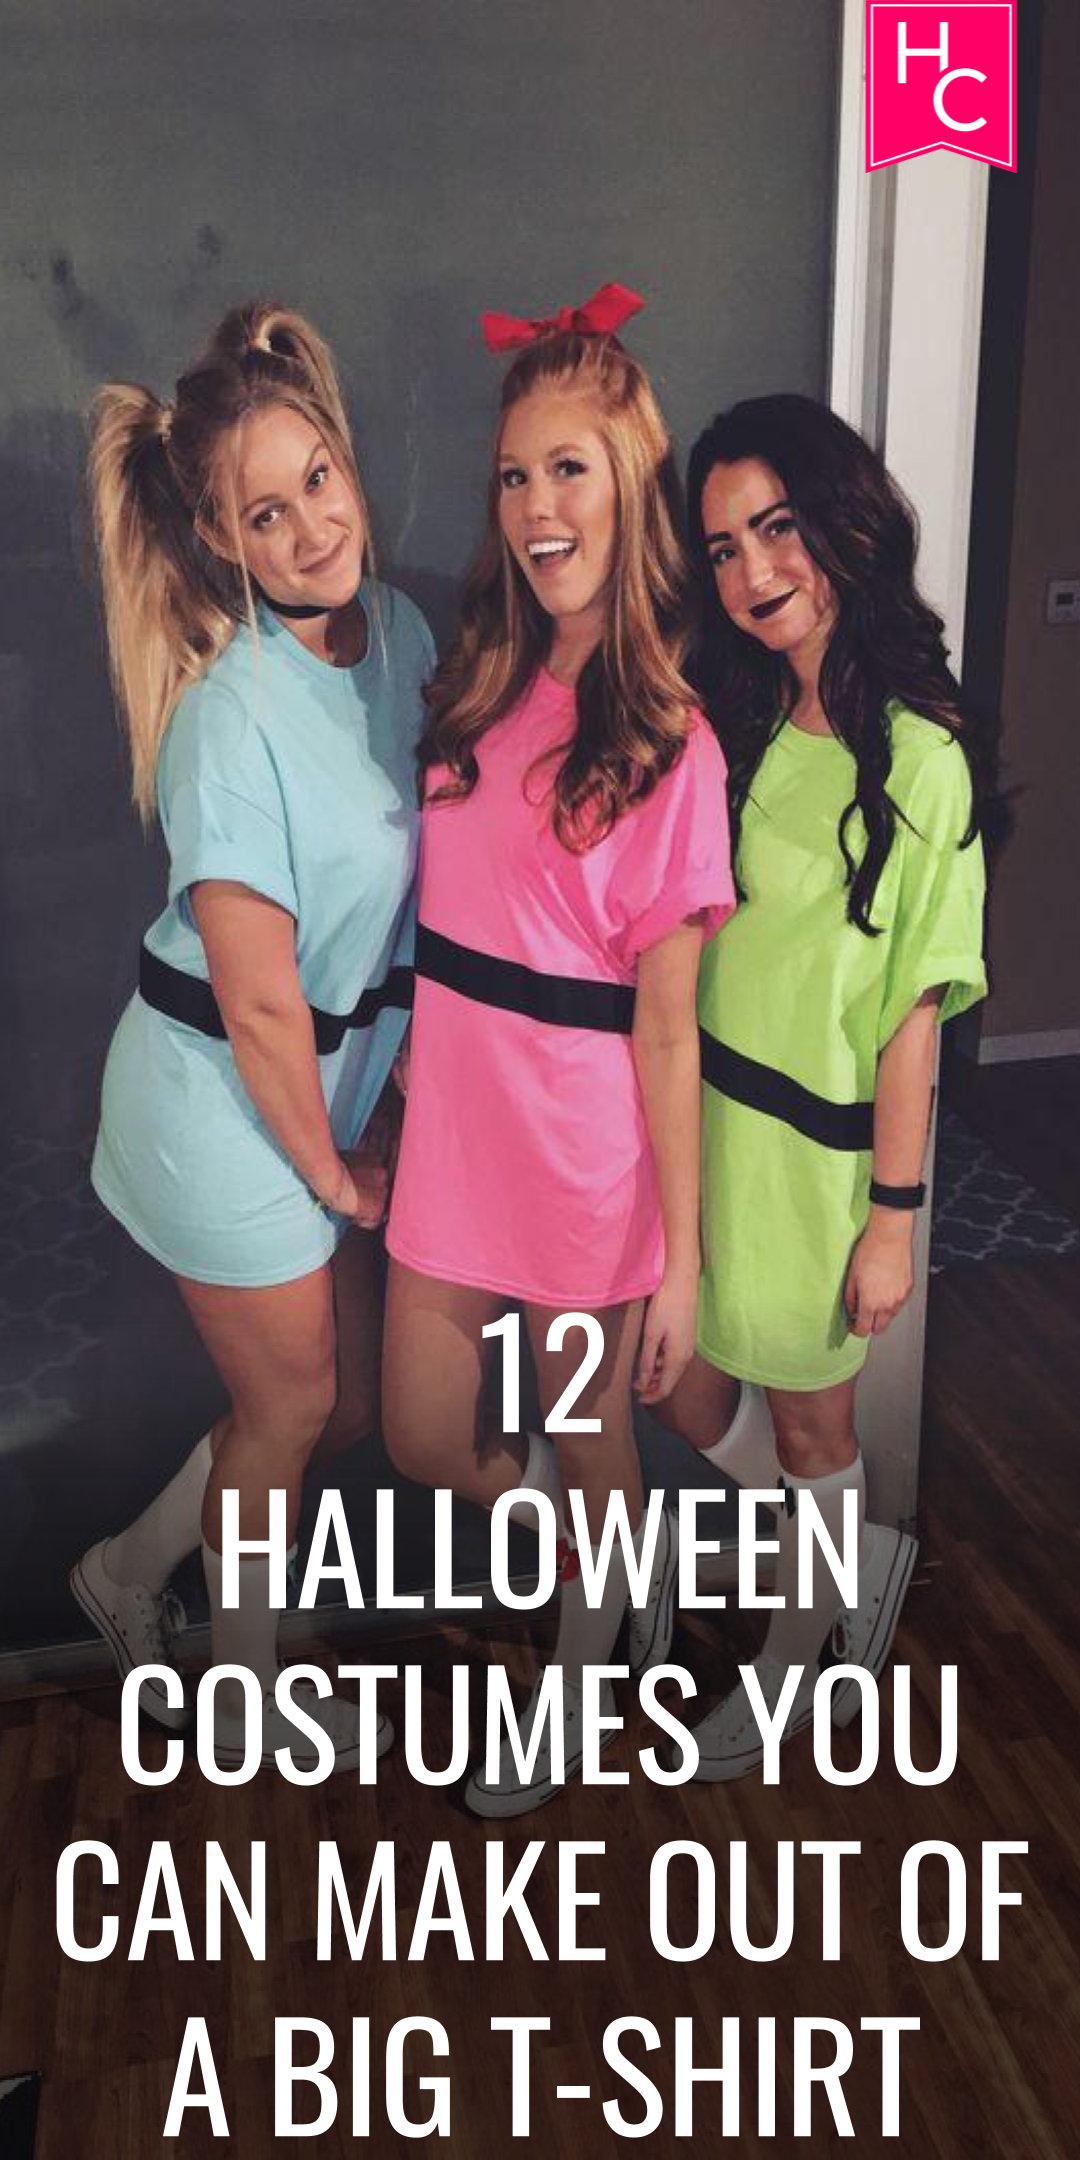 2024df5851a29f0250b09c0699698e15 12 halloween costumes you can make out of a big t shirt,Costumes Get Down Memes